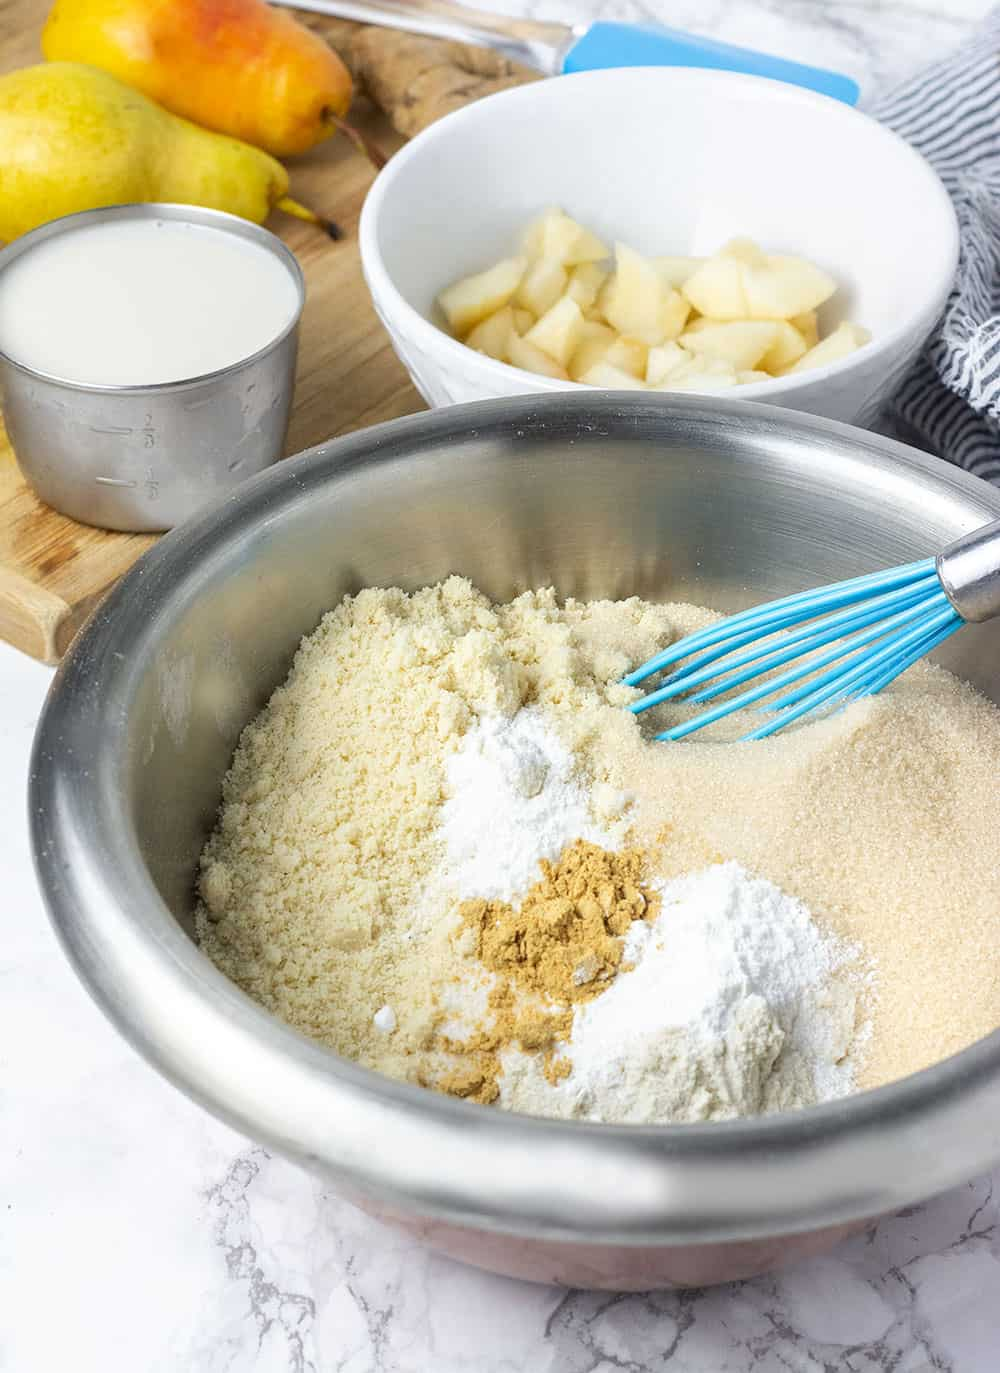 Ingredients for vegan-gluten-free pear muffins in a bowl with chopped pear, almond milk